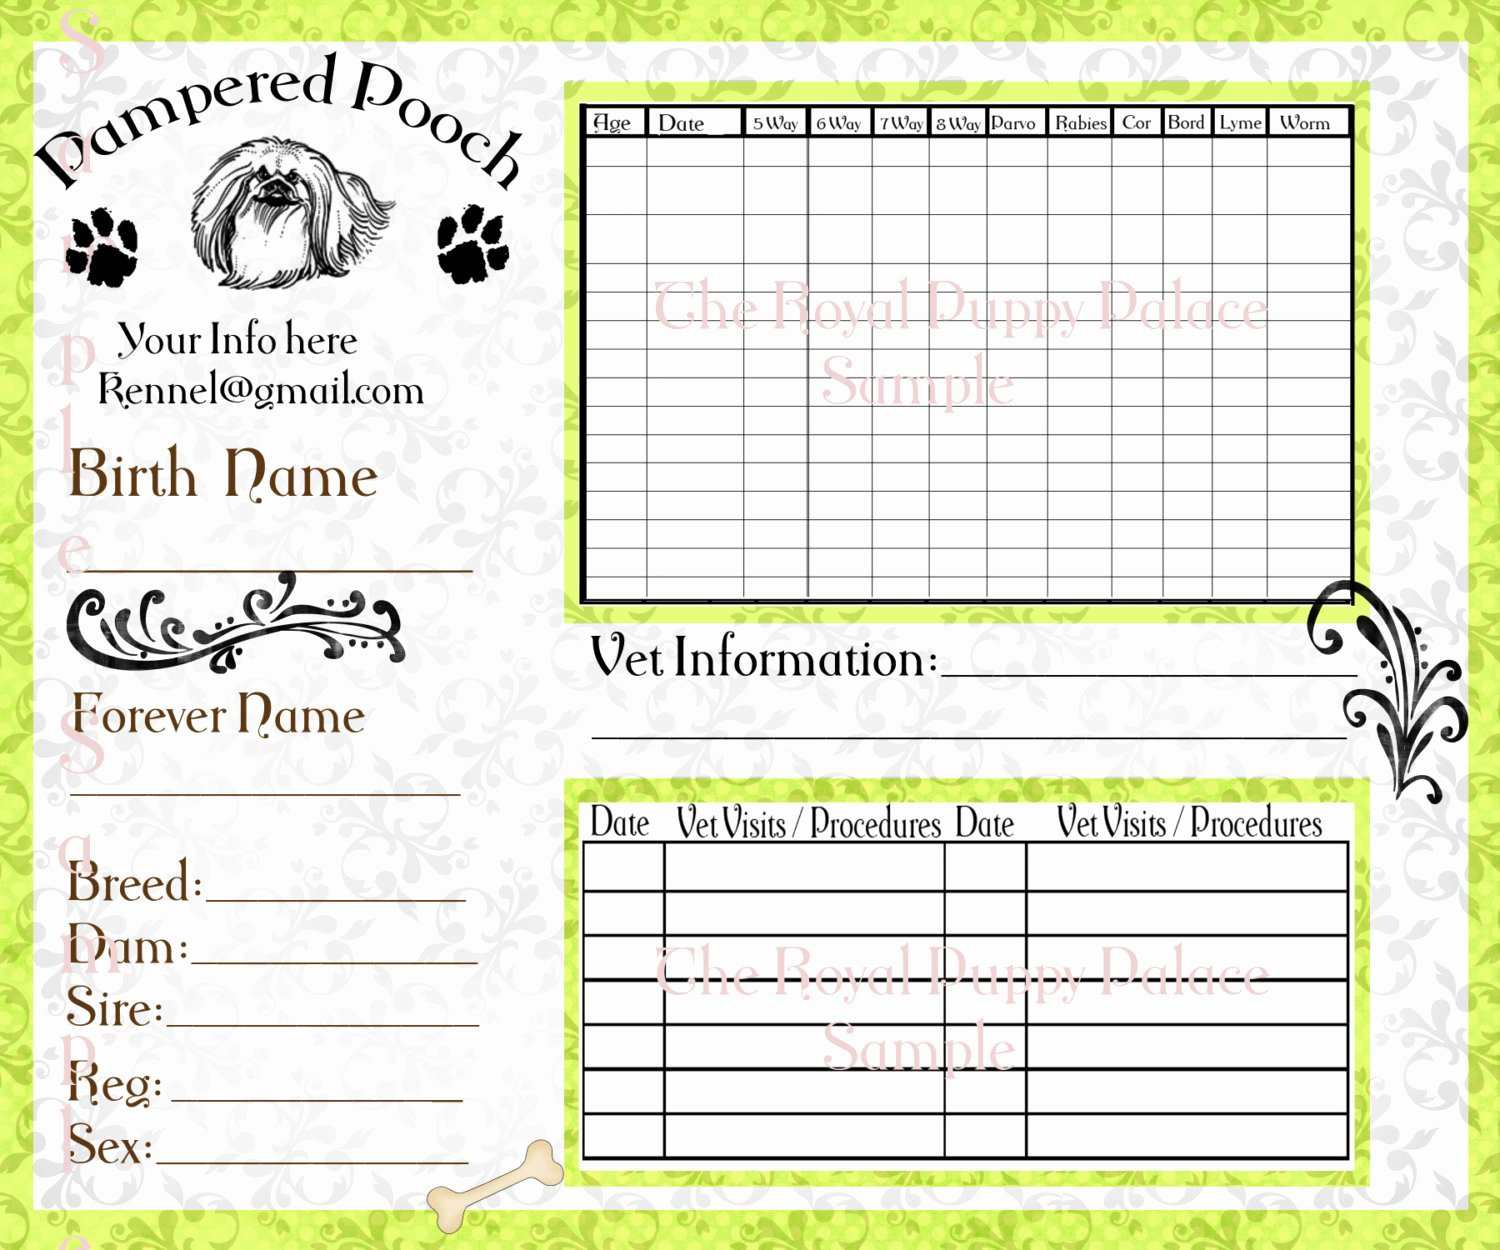 Puppy Record Template New Pampered Pooch Green Customizable Vaccination Cards for Dog